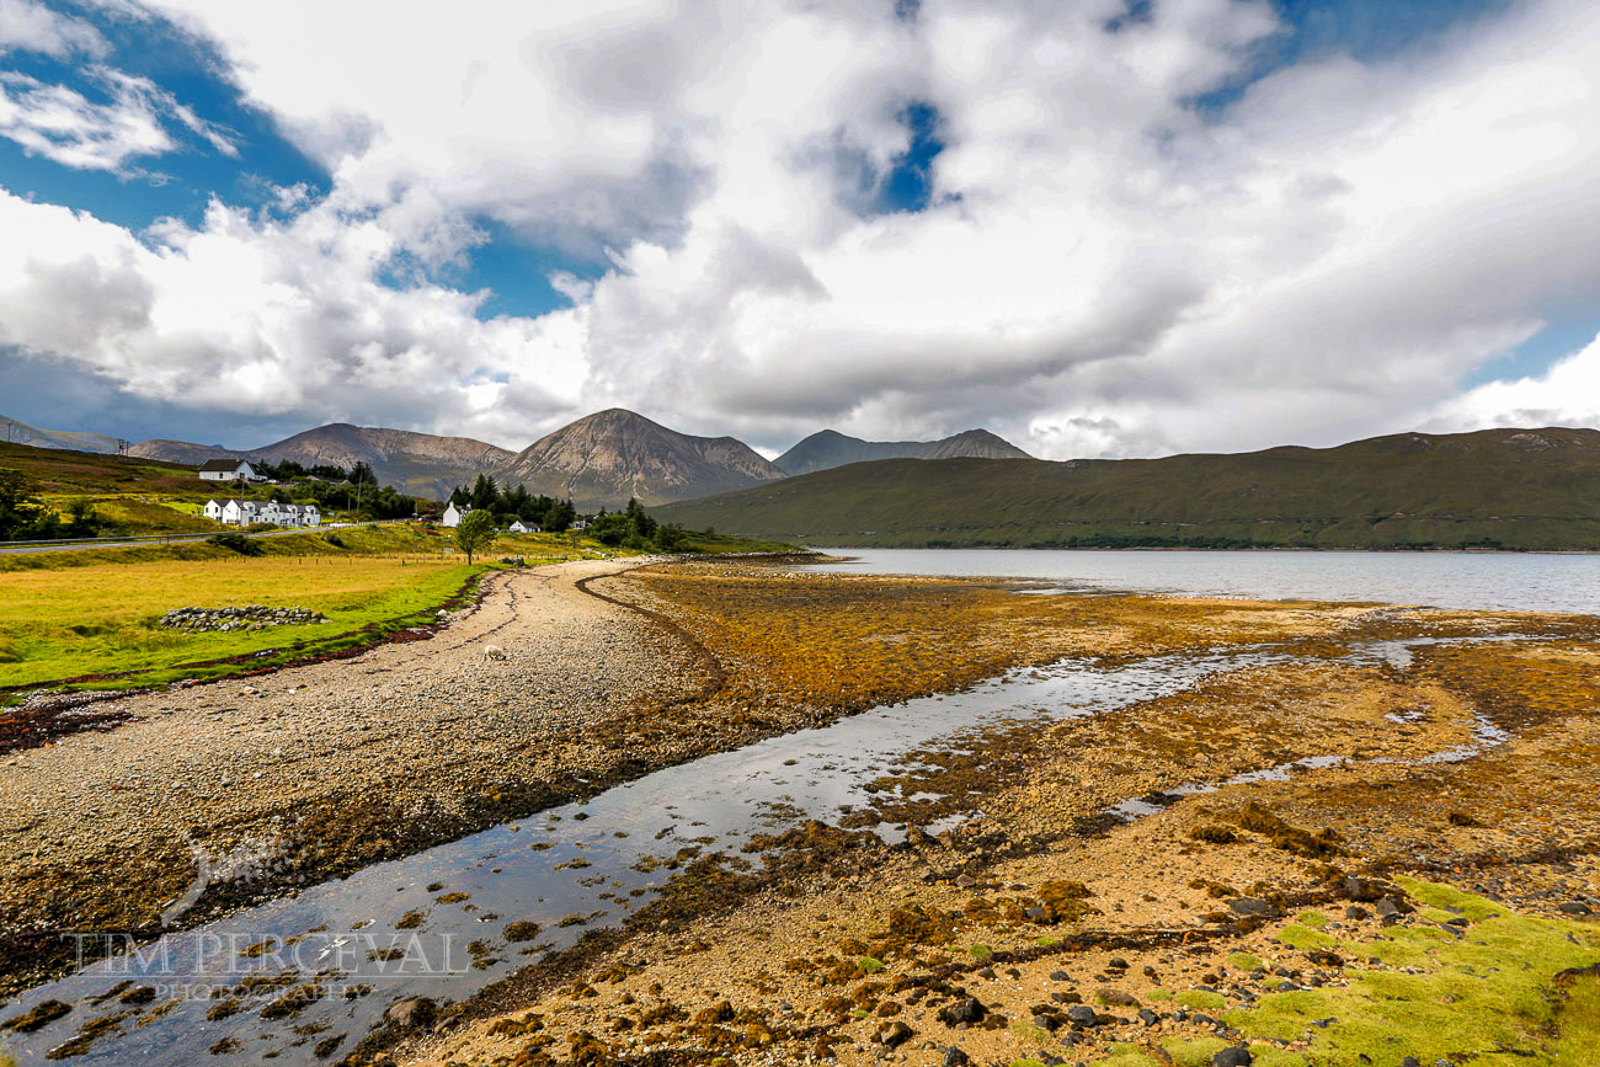 Loch Ainort shoreline overlooking the hills of Marsco, Isle of Skye